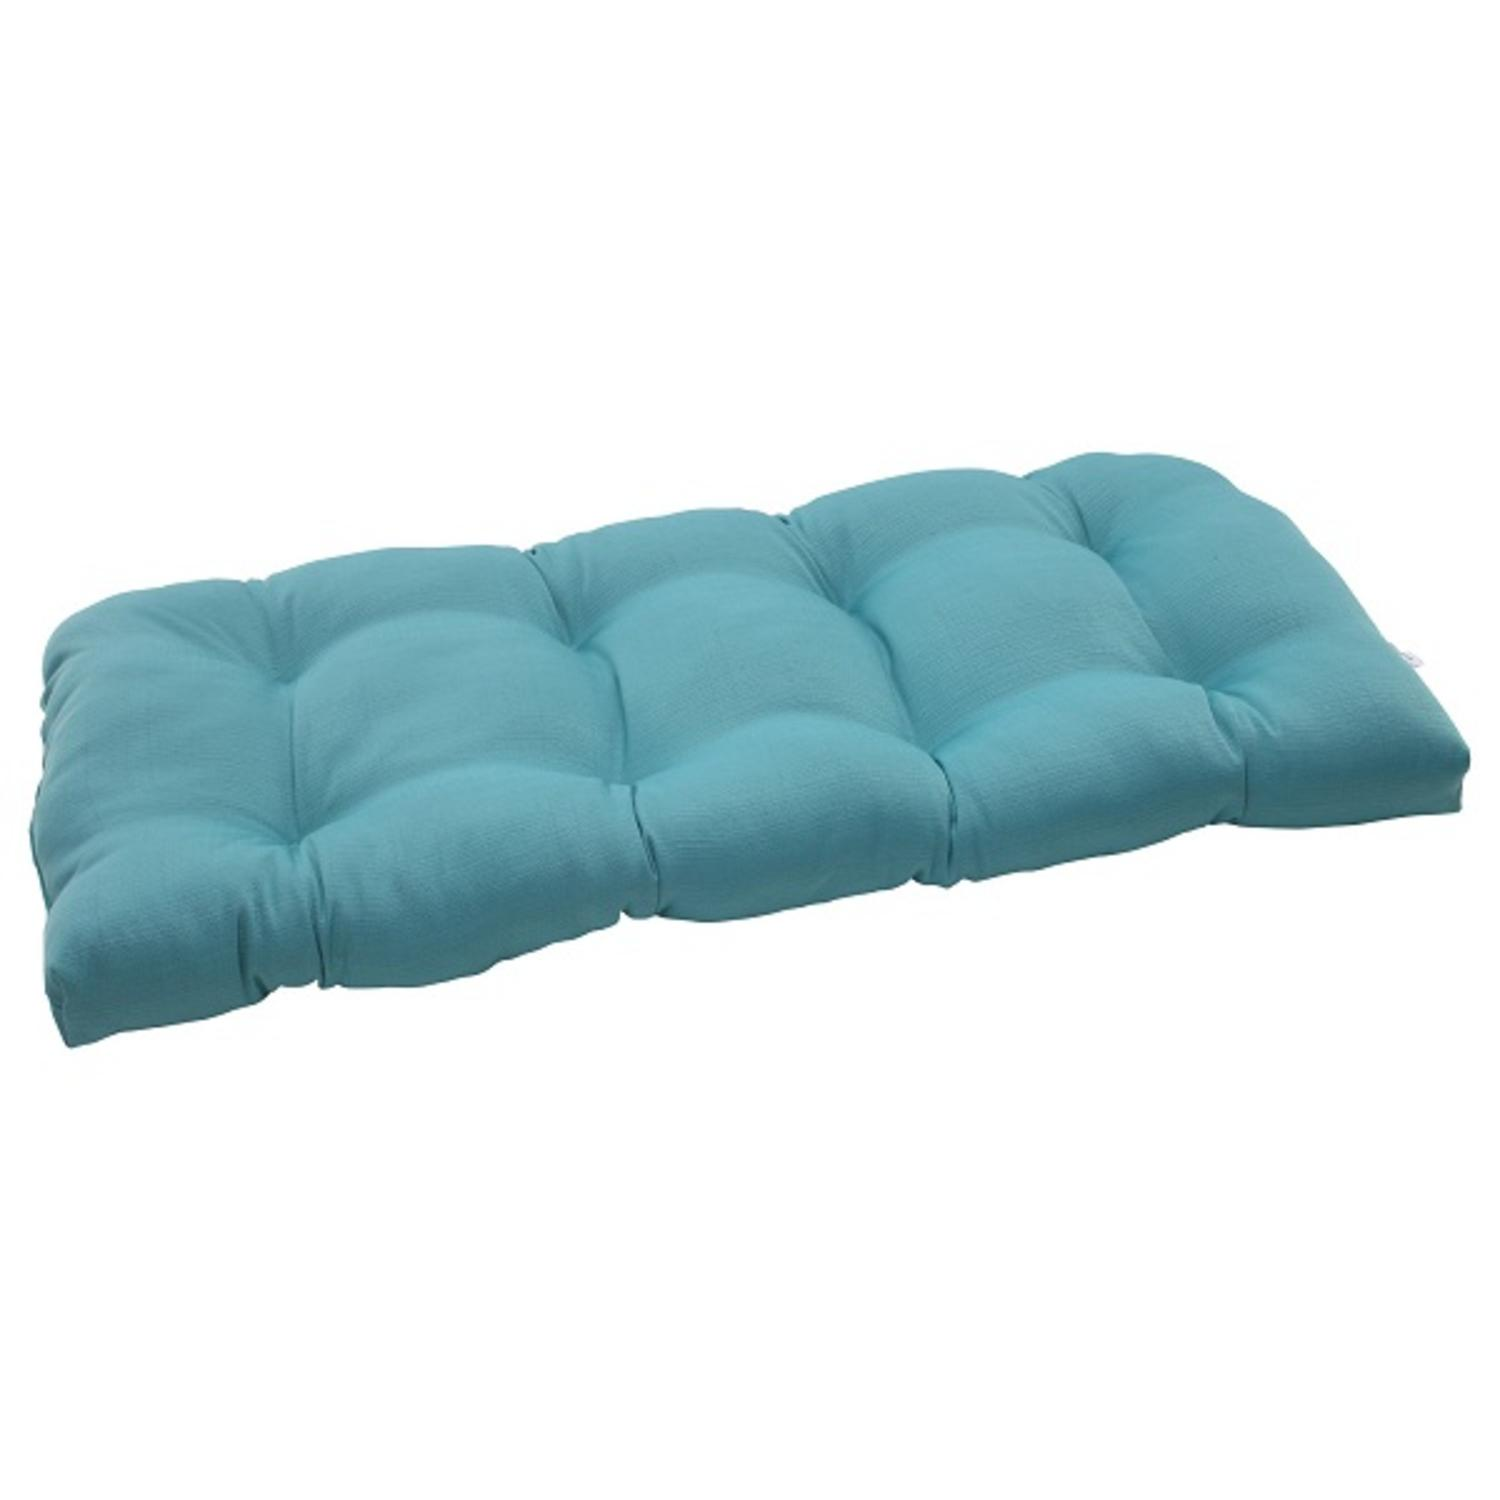 "44"" Aquatic Turquoise Outdoor Patio Wicker Loveseat Cushion"